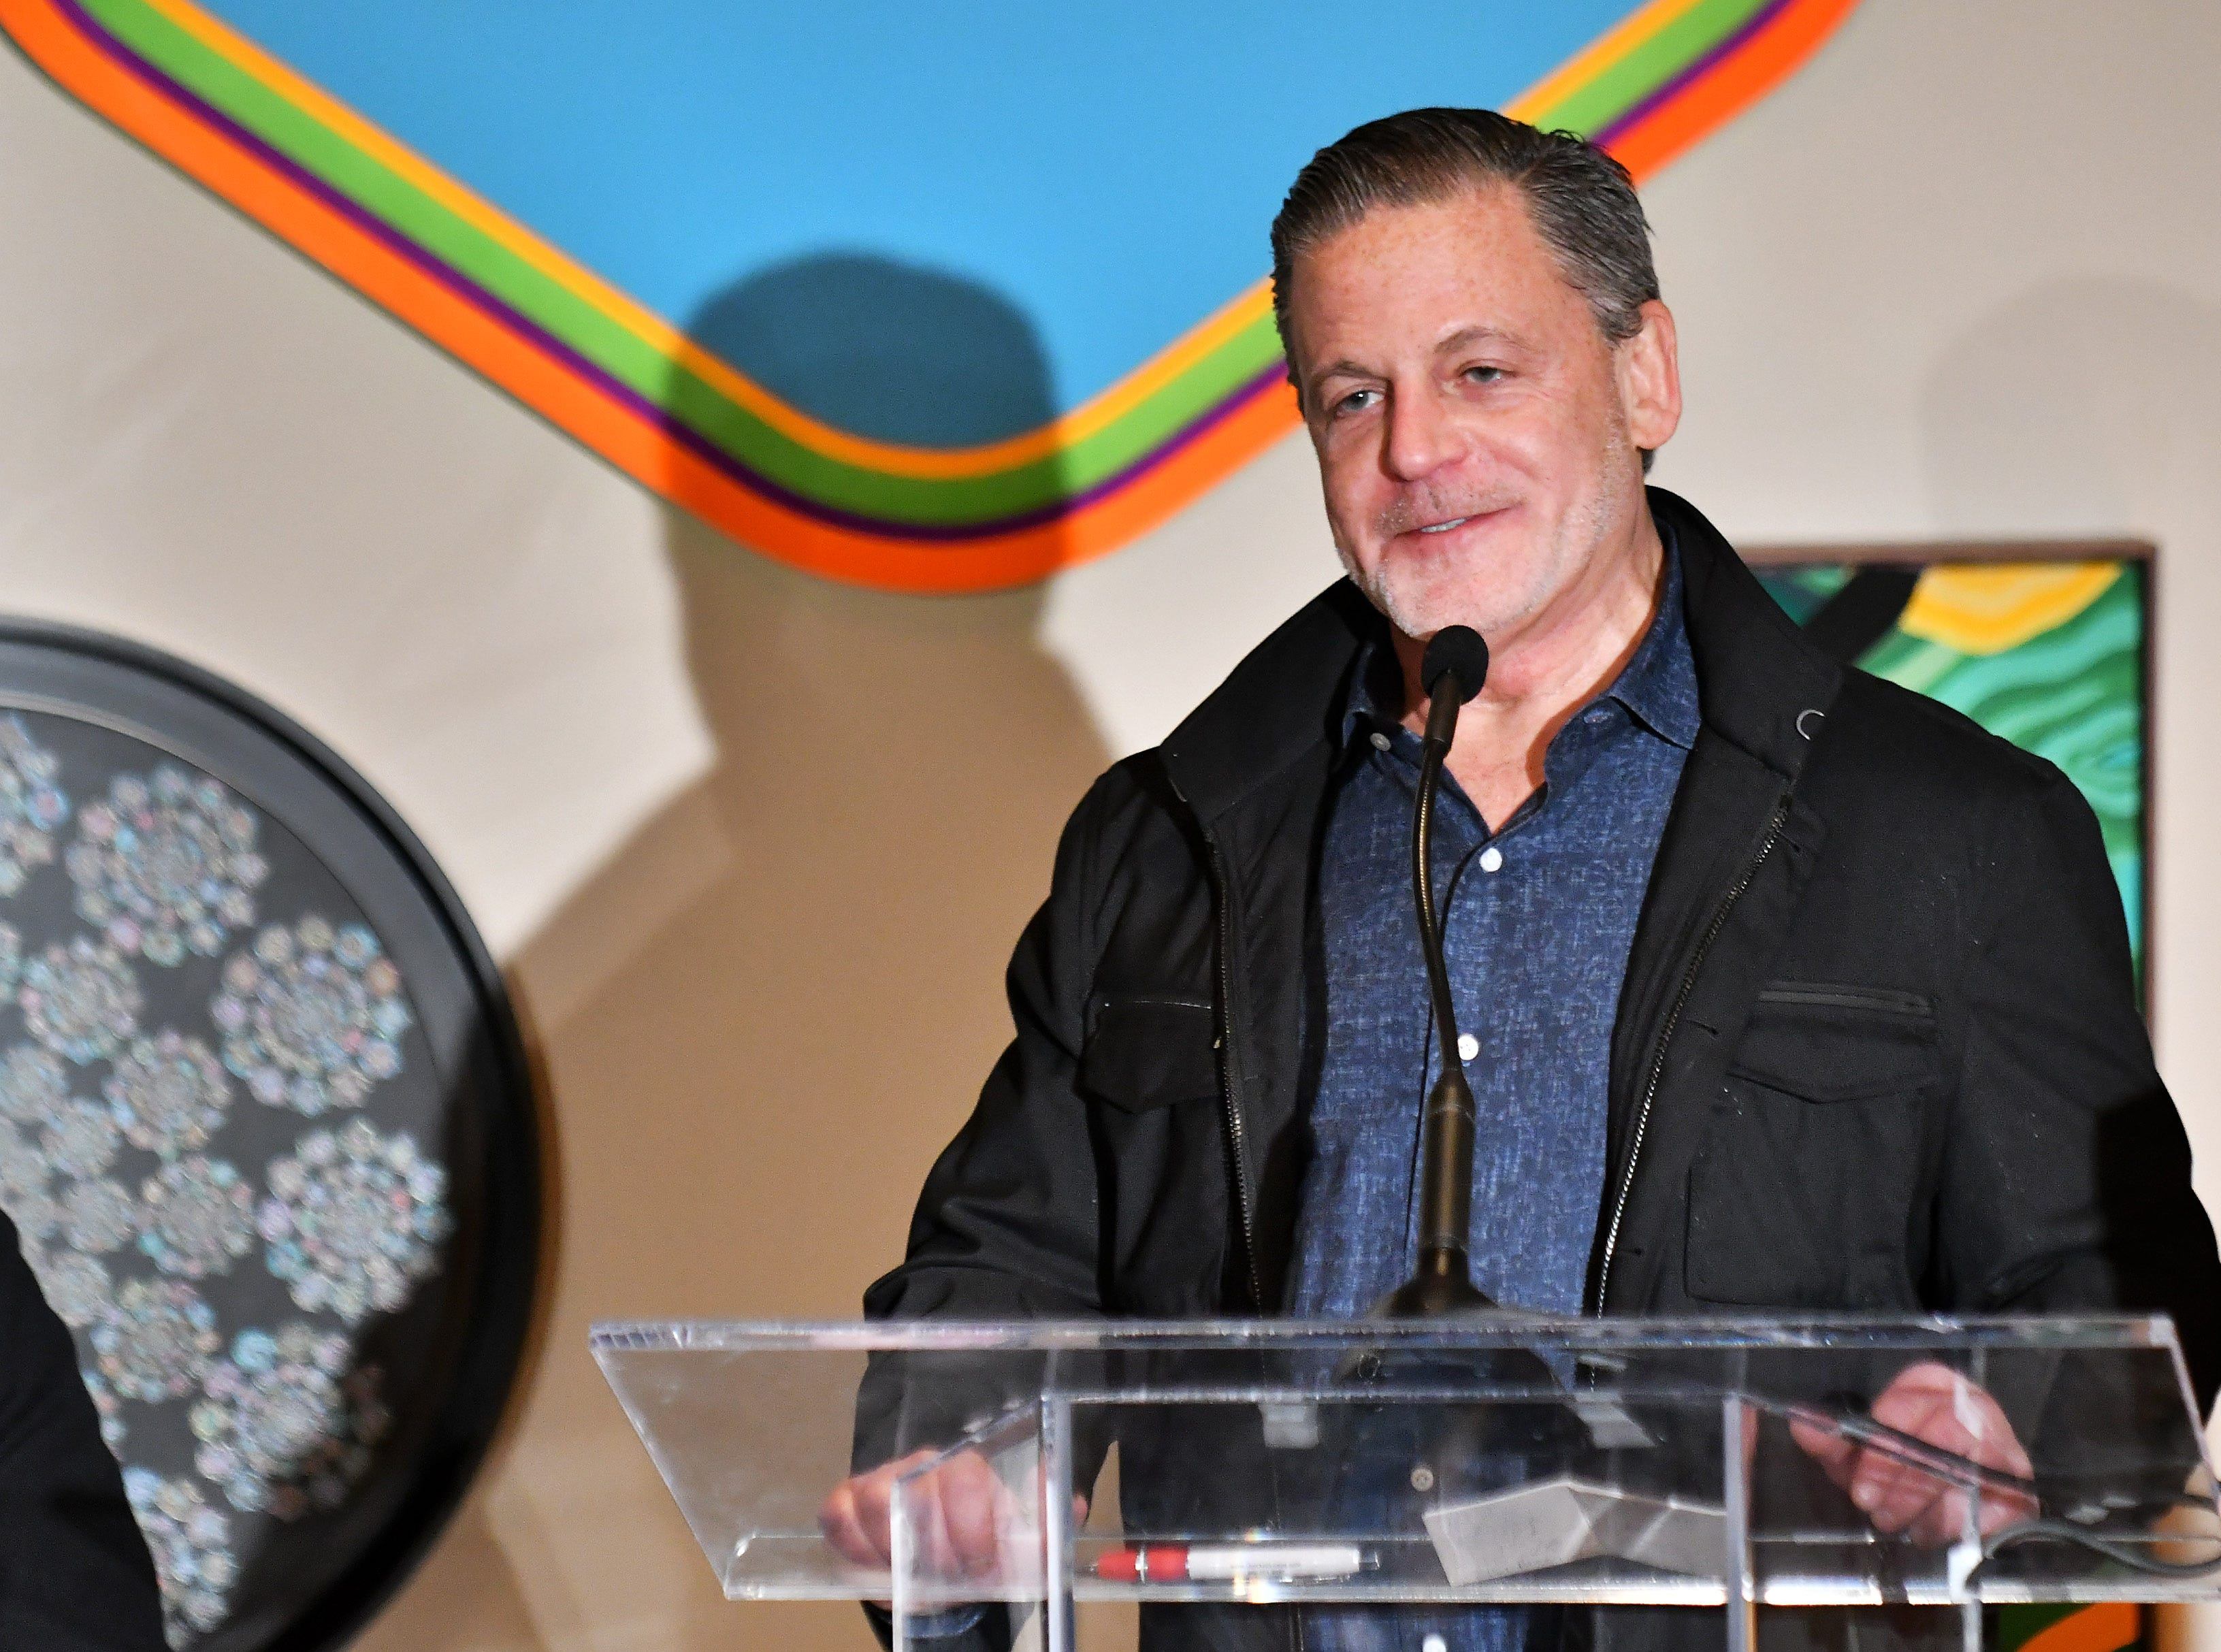 Dan Gilbert, founder of Quicken Loans and Rock Ventures, speaks at the press conference celebrating the opening of  the Shinola Hotel in Detroit on Dec. 18, 2018.